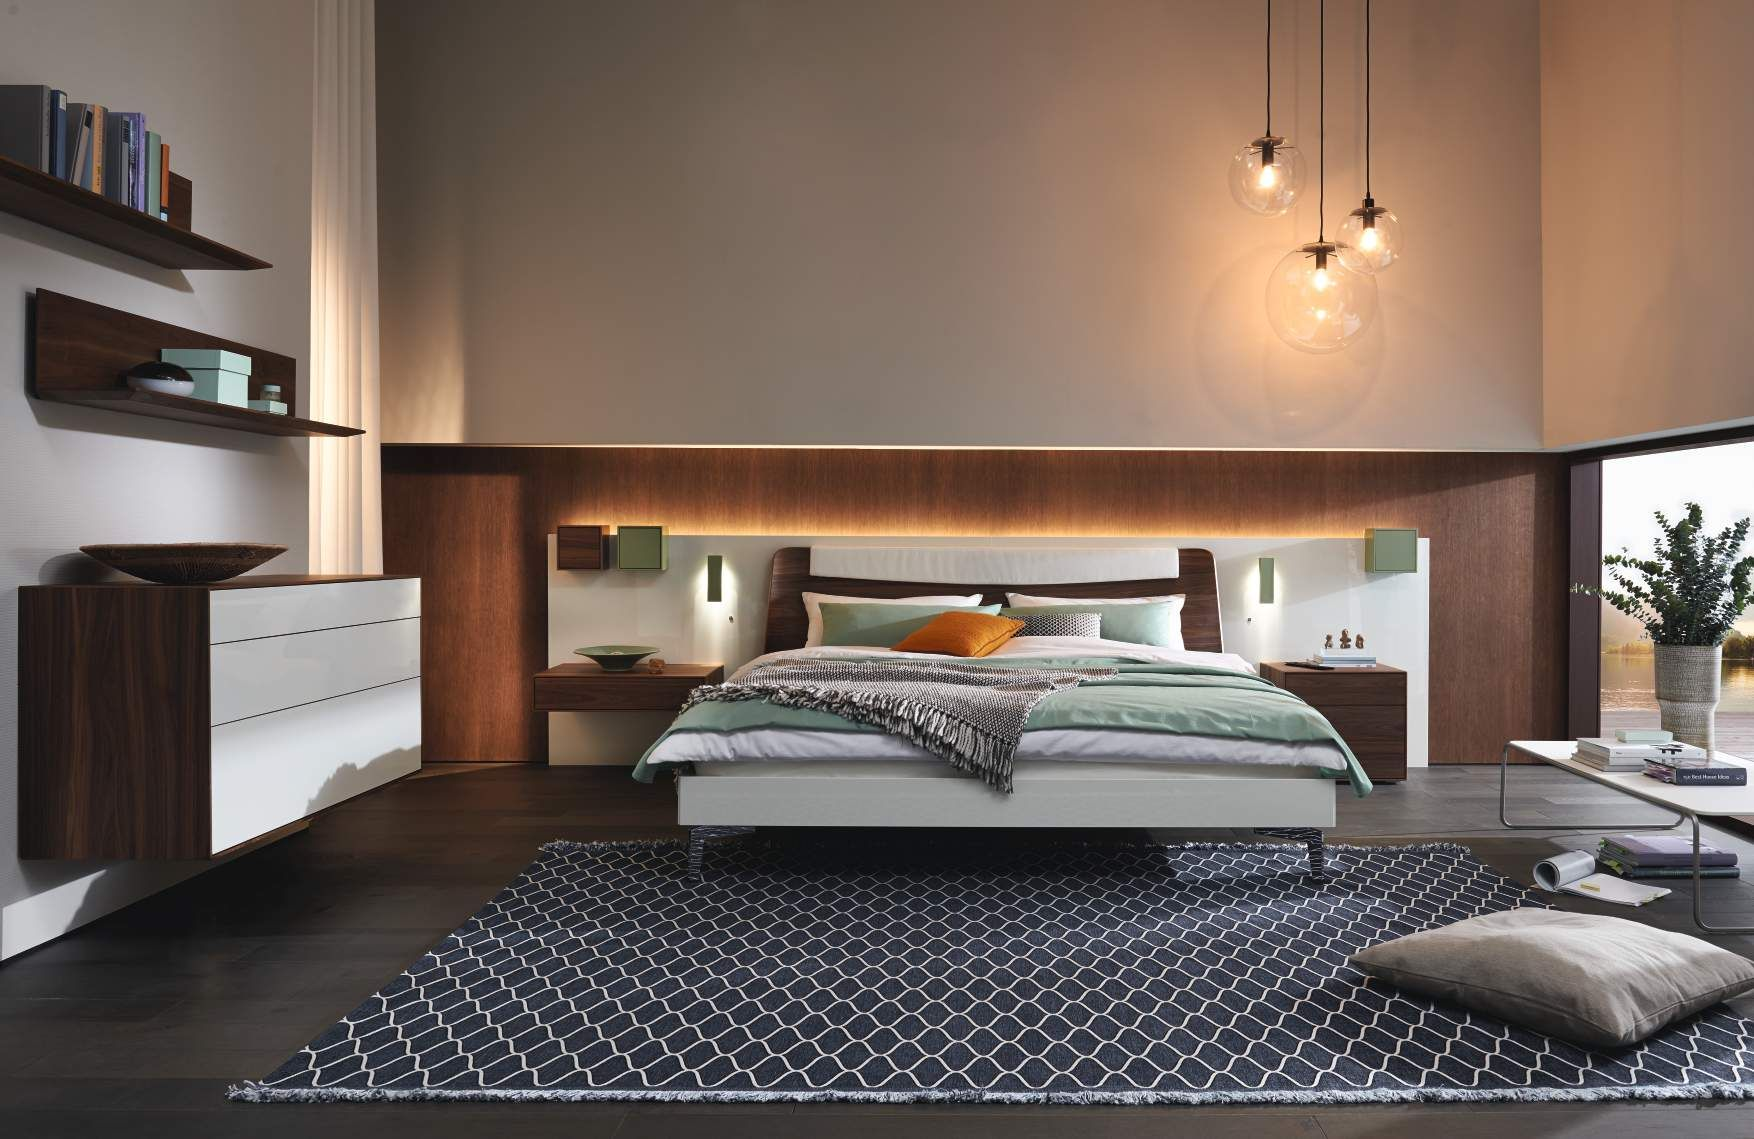 Minimalist Bedroom Interior Inspiration From Huelsta